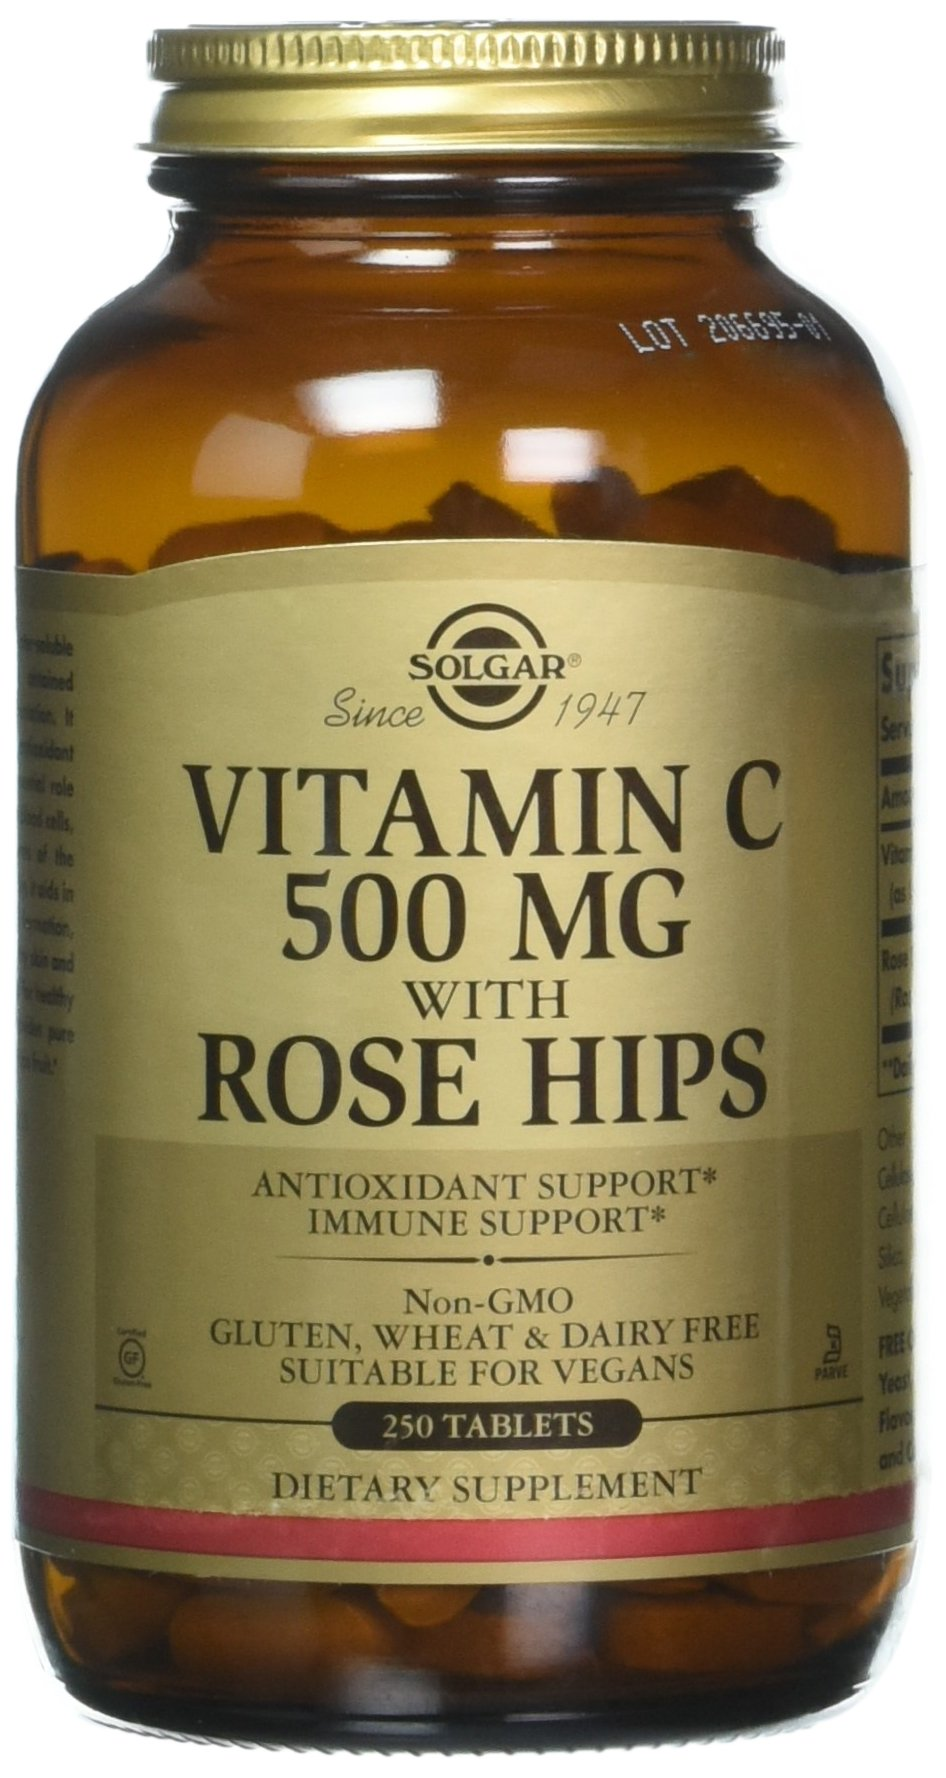 Solgar – Vitamin C with Rose Hips, 500 mg, 250 Tablets